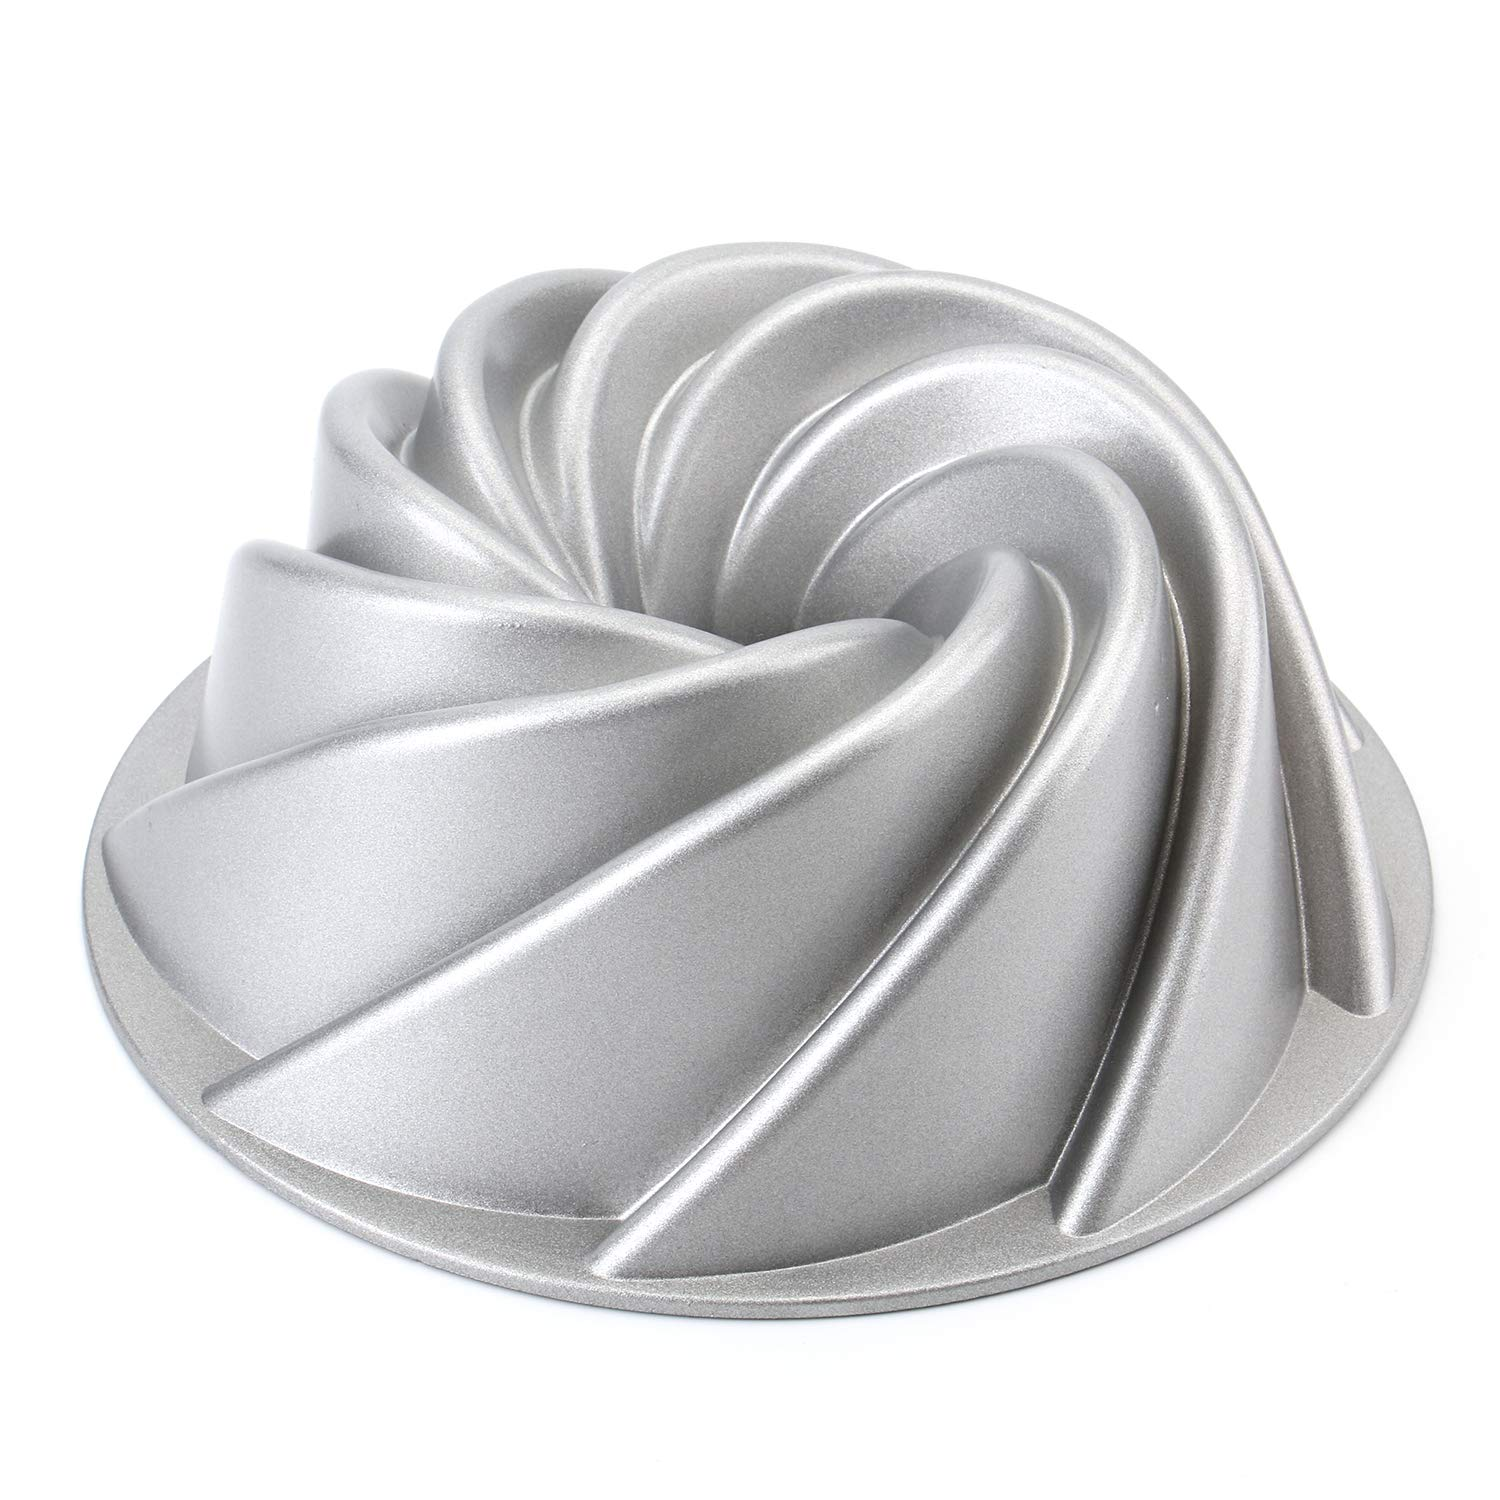 Tosnail 9-Inch Non-Stick Fluted Cake Pan Bundt Cake Pan Specialty and Novelty Cake Pan